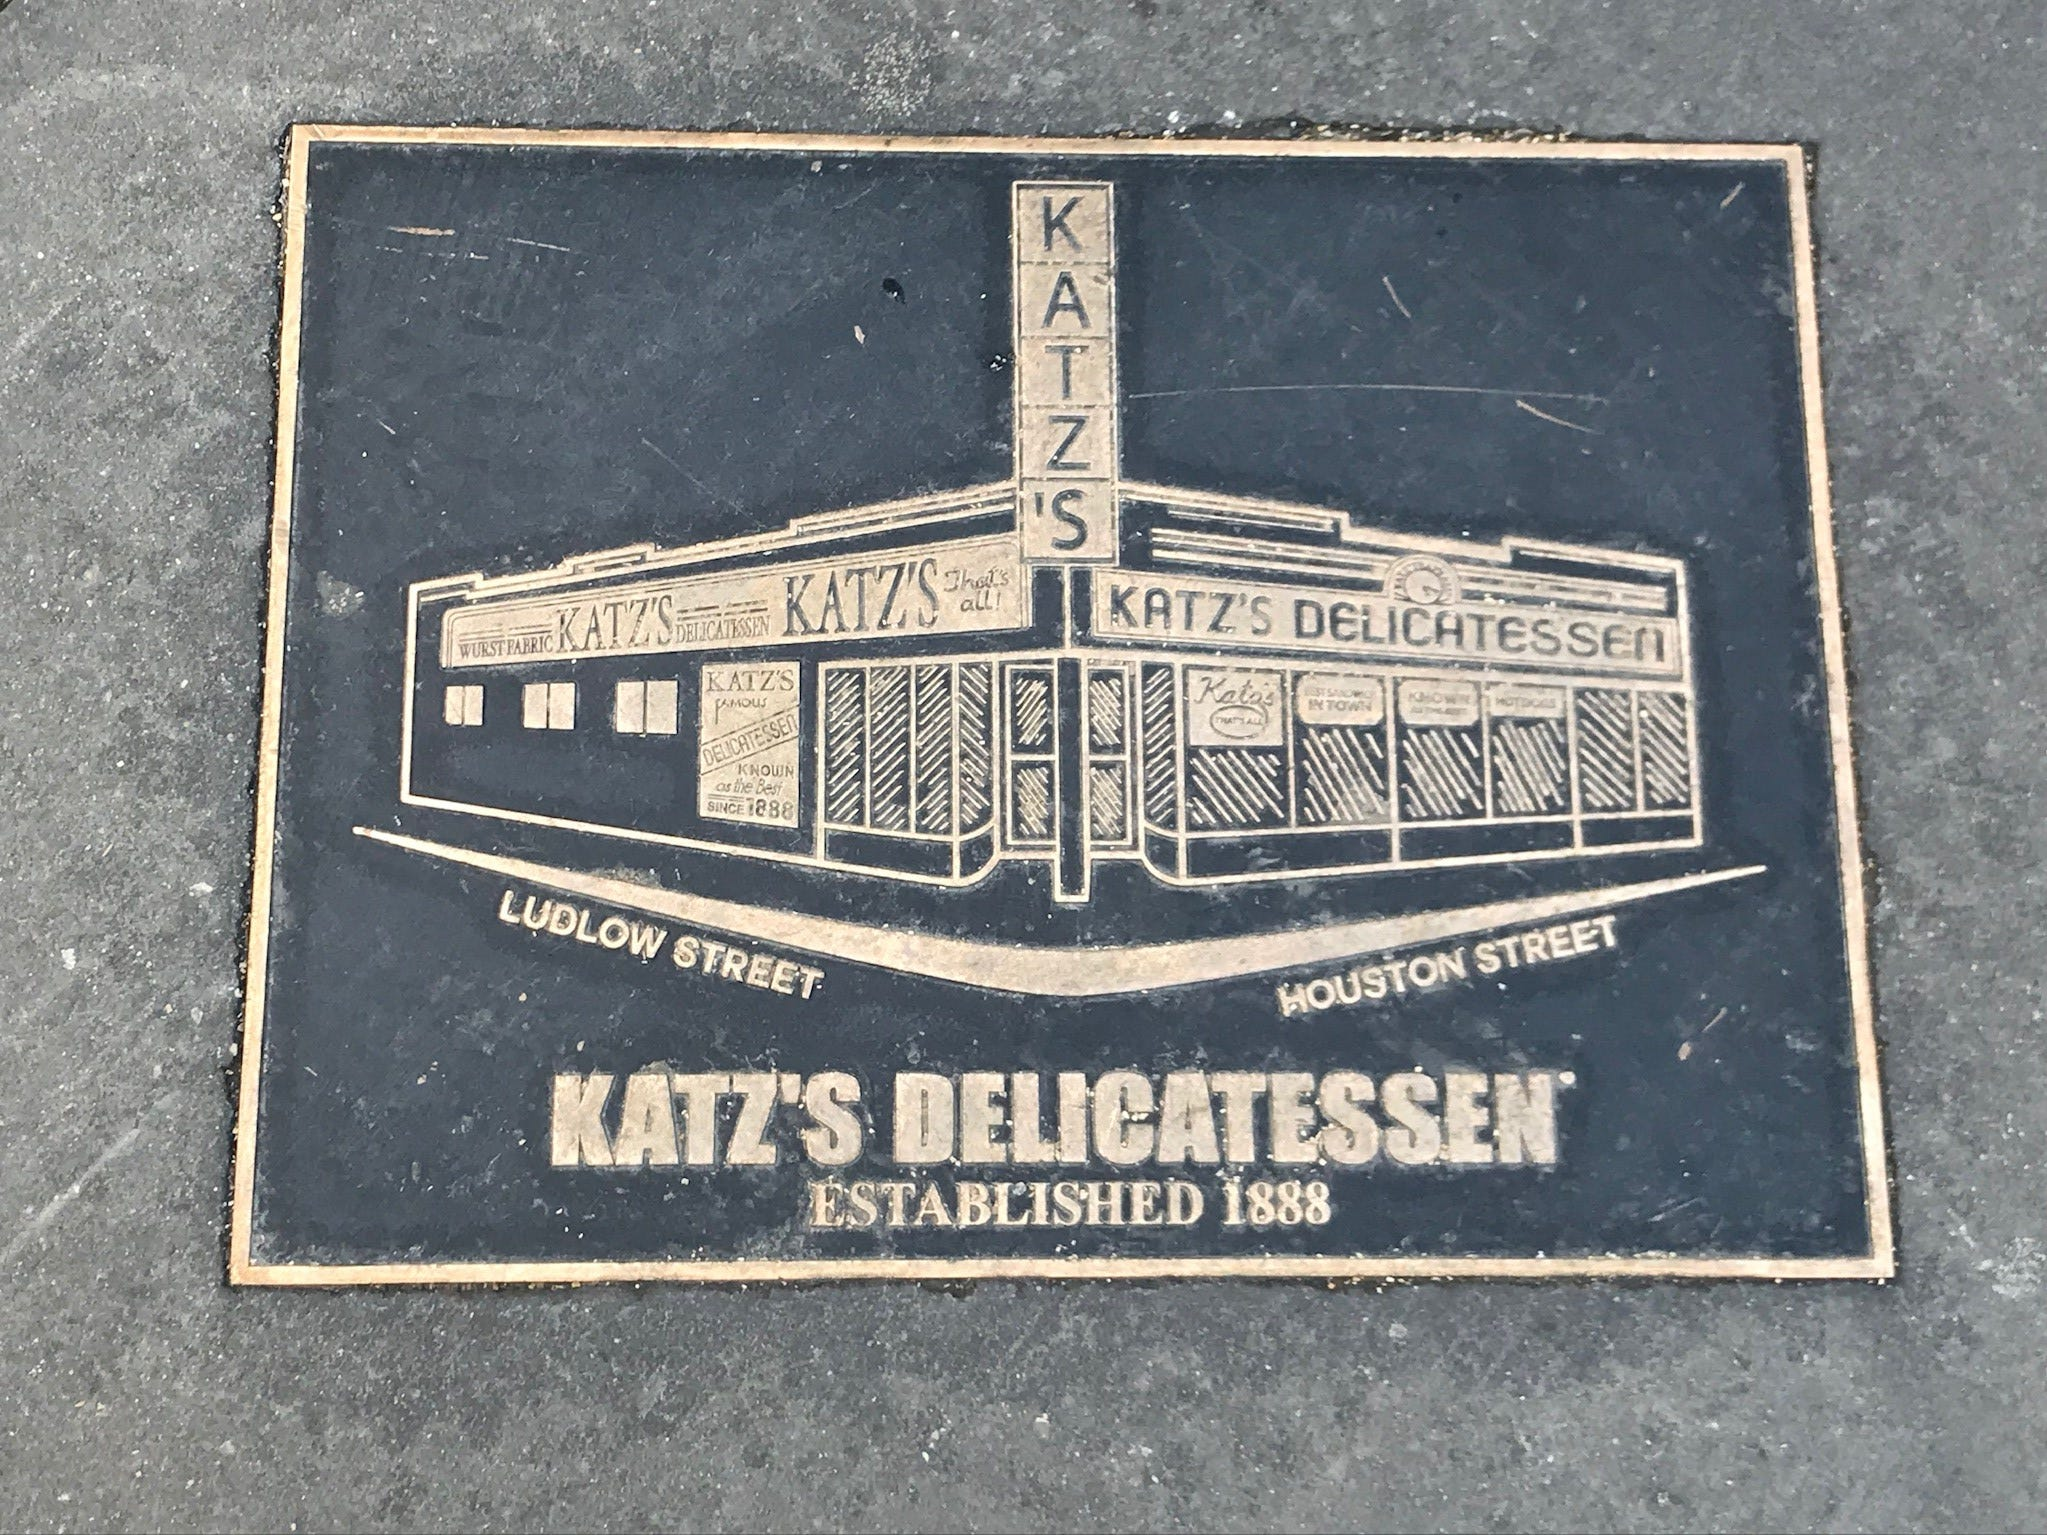 Katz's is so famous and historic it even warrants its own sidewalk plaque.